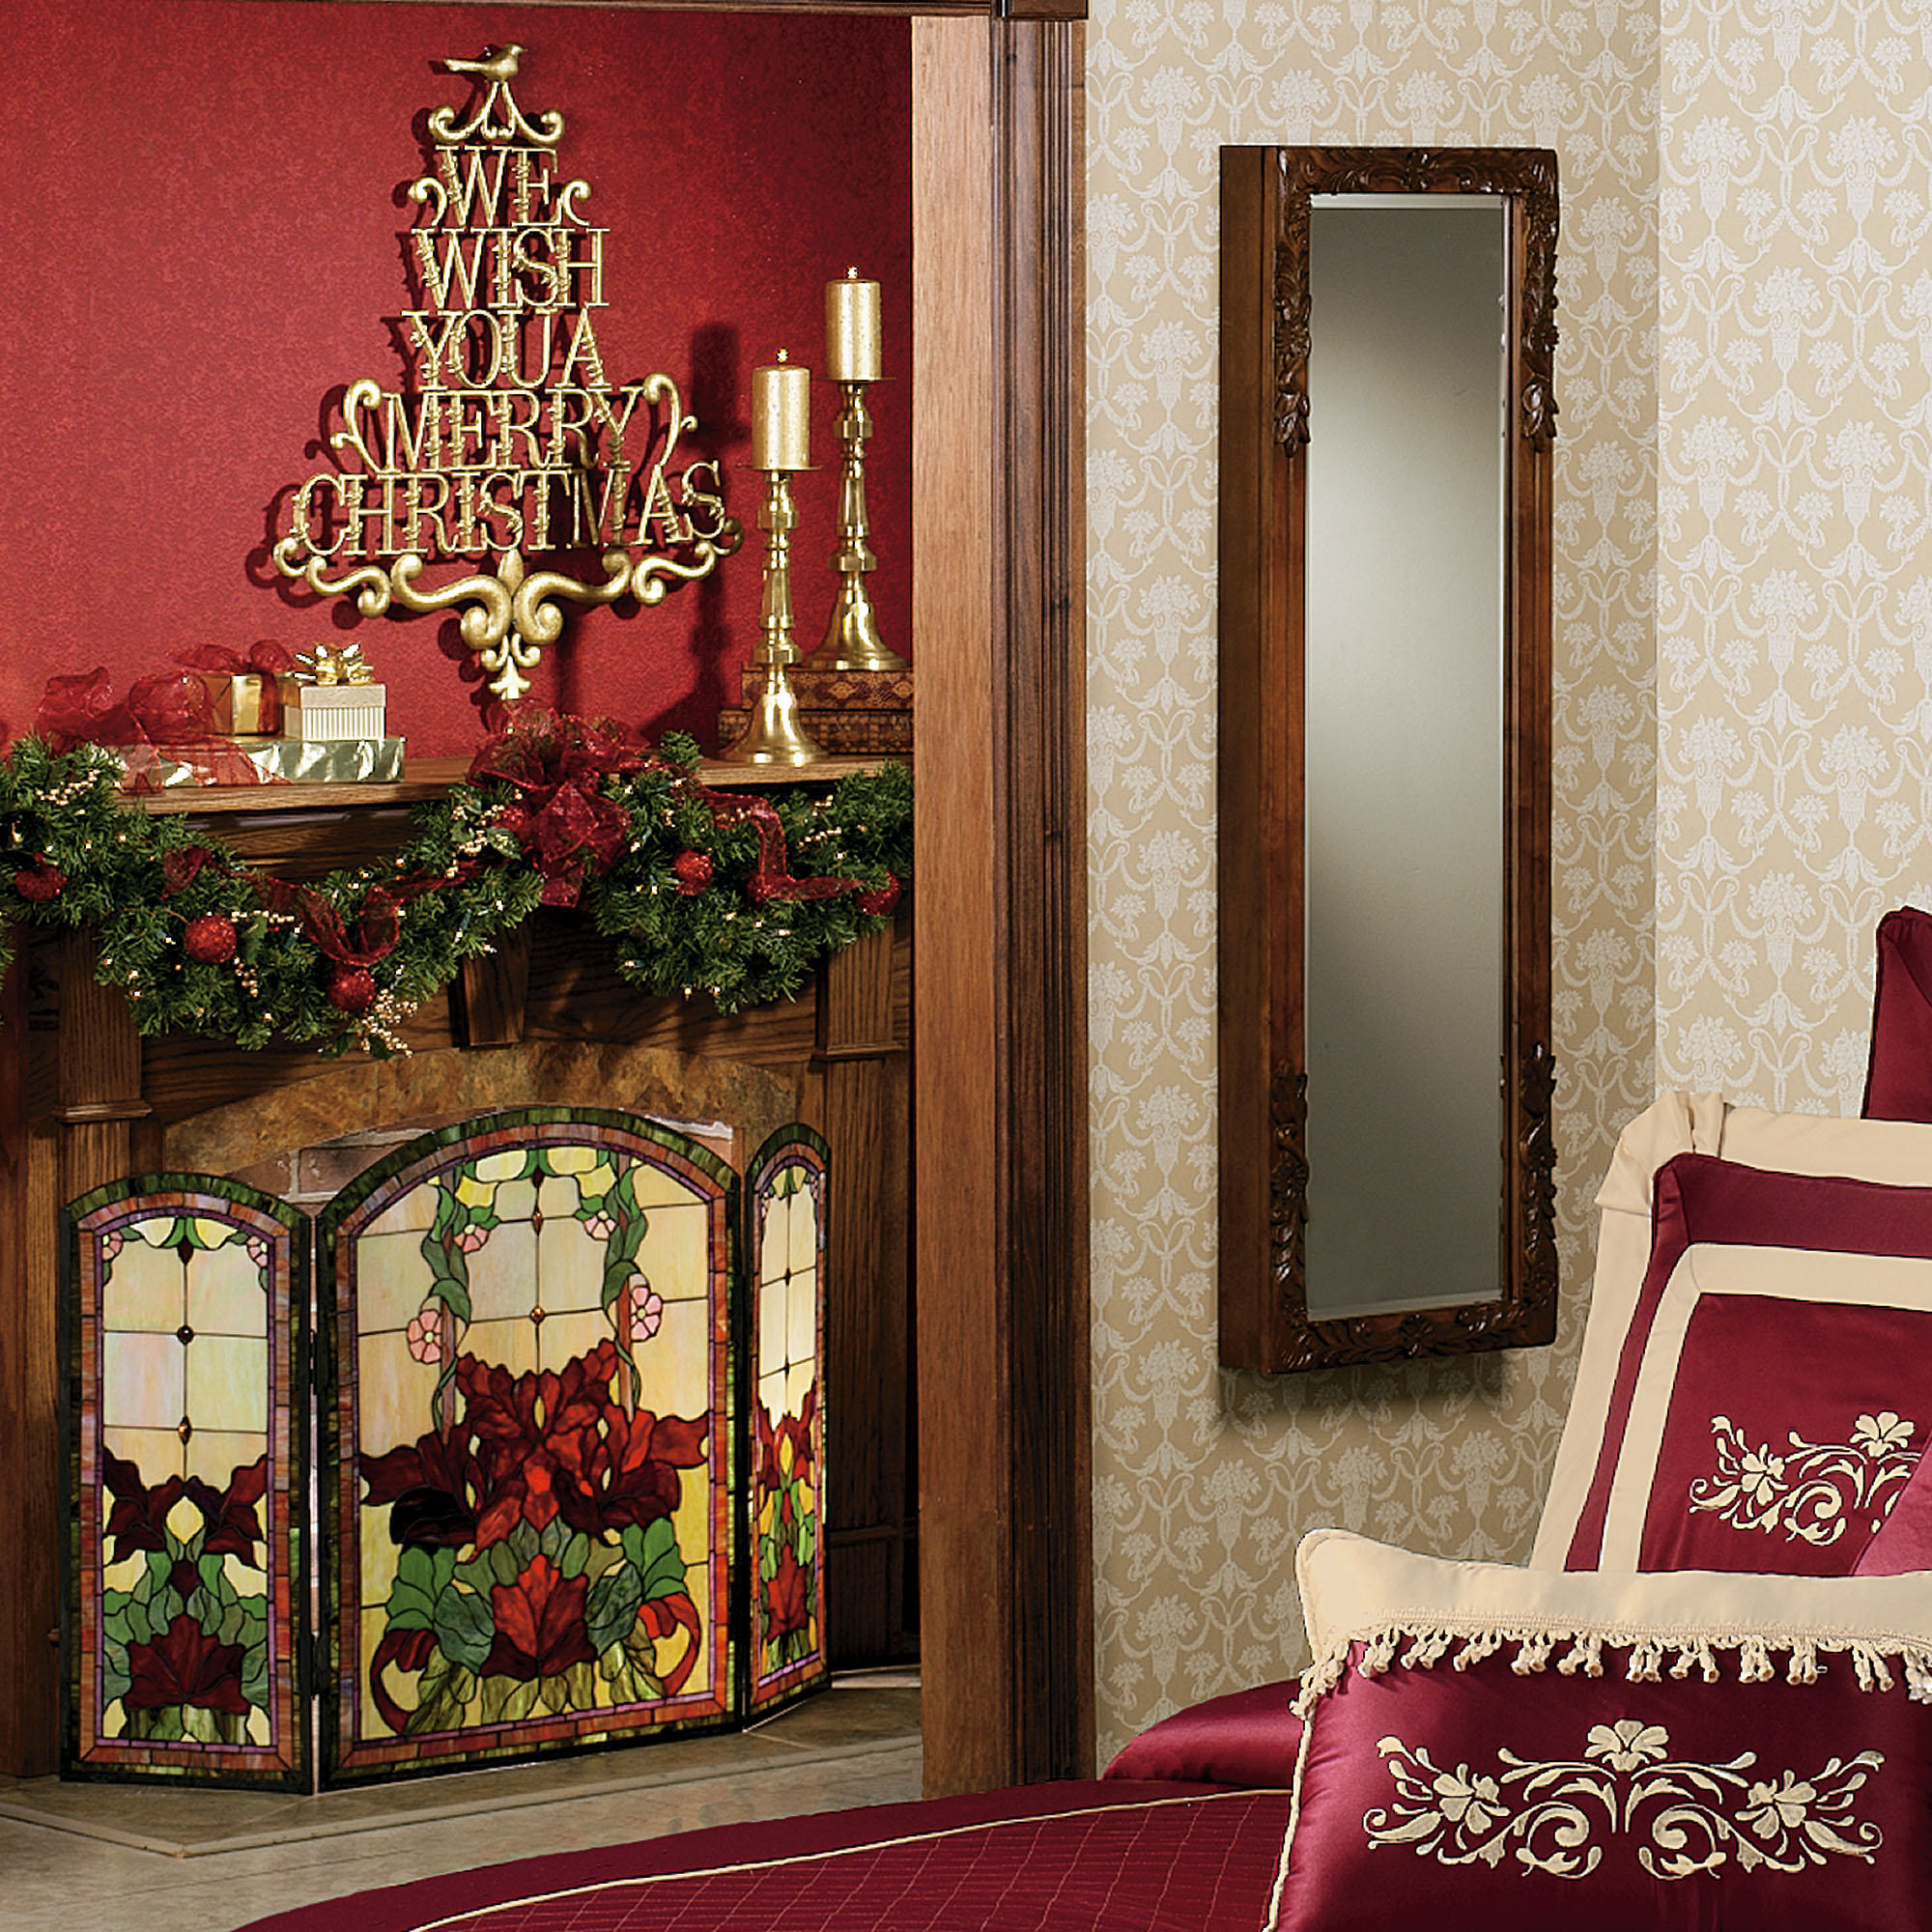 Christmas Fireplace Screen.Yvette Decorative Floral Stained Glass Fireplace Screen